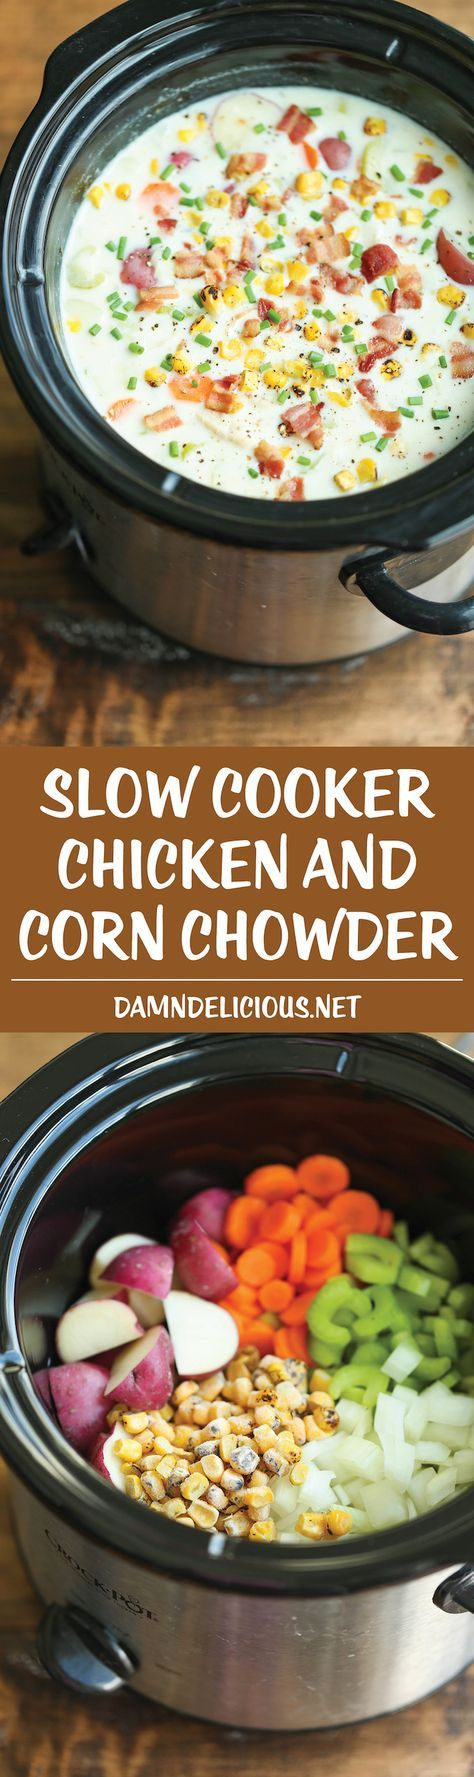 Slow Cooker Chicken and Corn Chowder - Such a hearty, comforting and ...